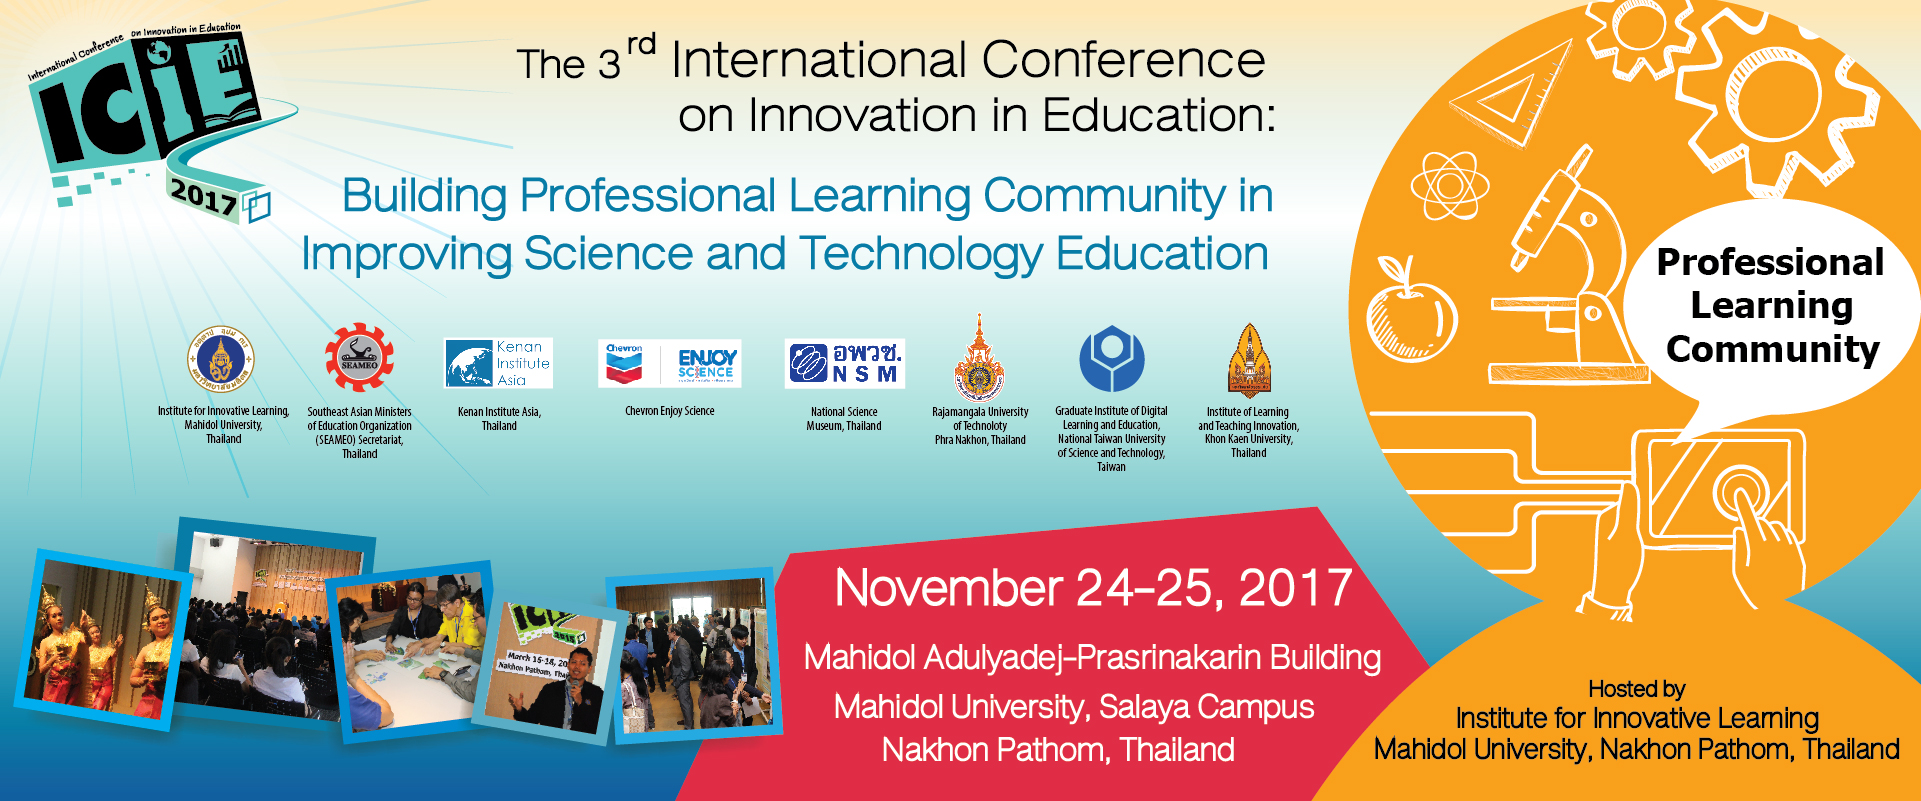 The 3rd International Conference on Innovation in Education (ICIE 2017): Building Professional Learning Community in Improving Science and Technology Education @ Faculty of Nursing  Mahidol University, Salaya Campus